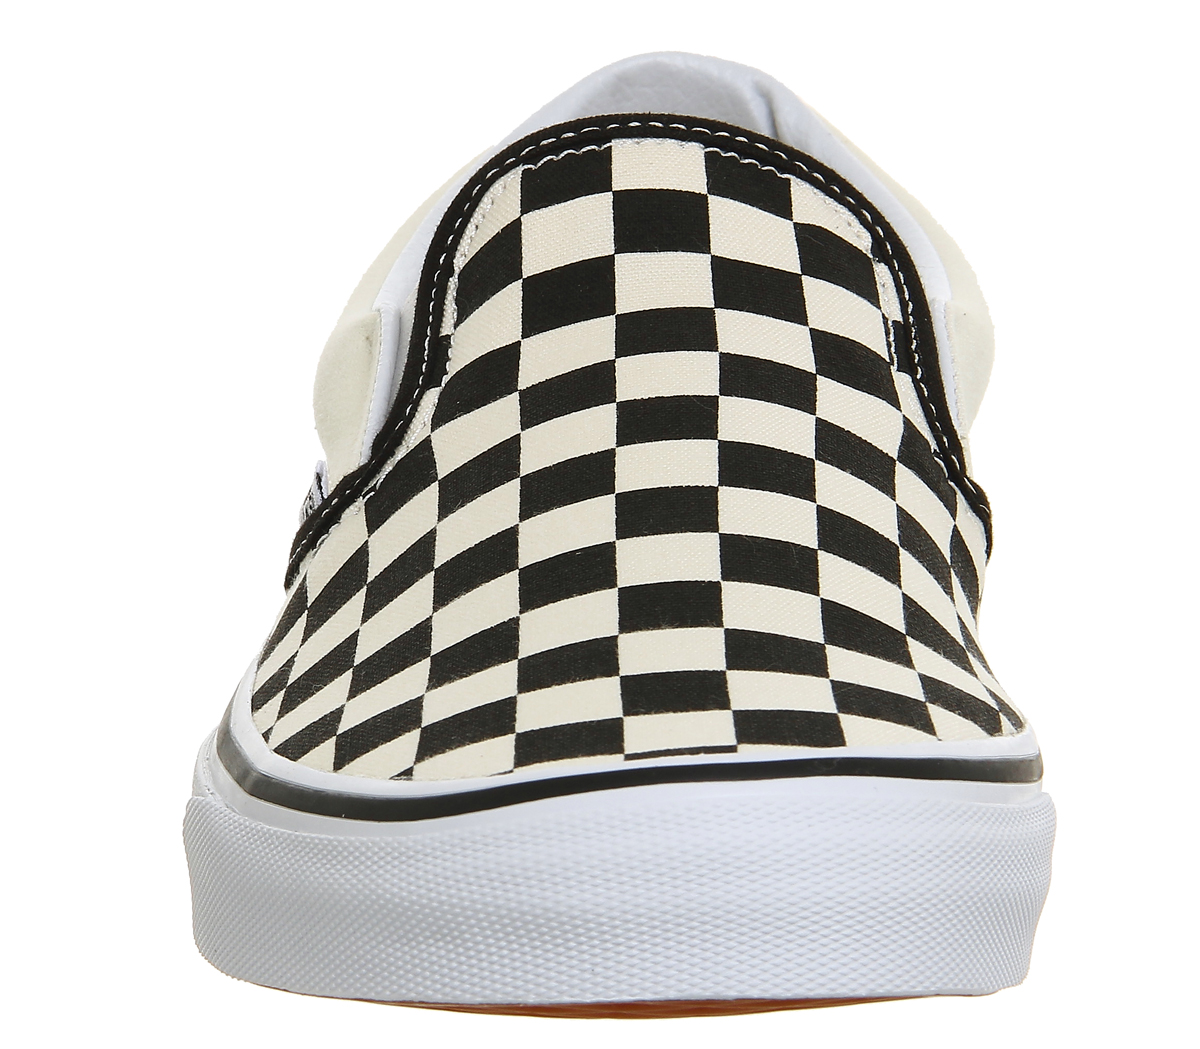 1200x1049 Vans Classic Slip On Shoes Black White Check